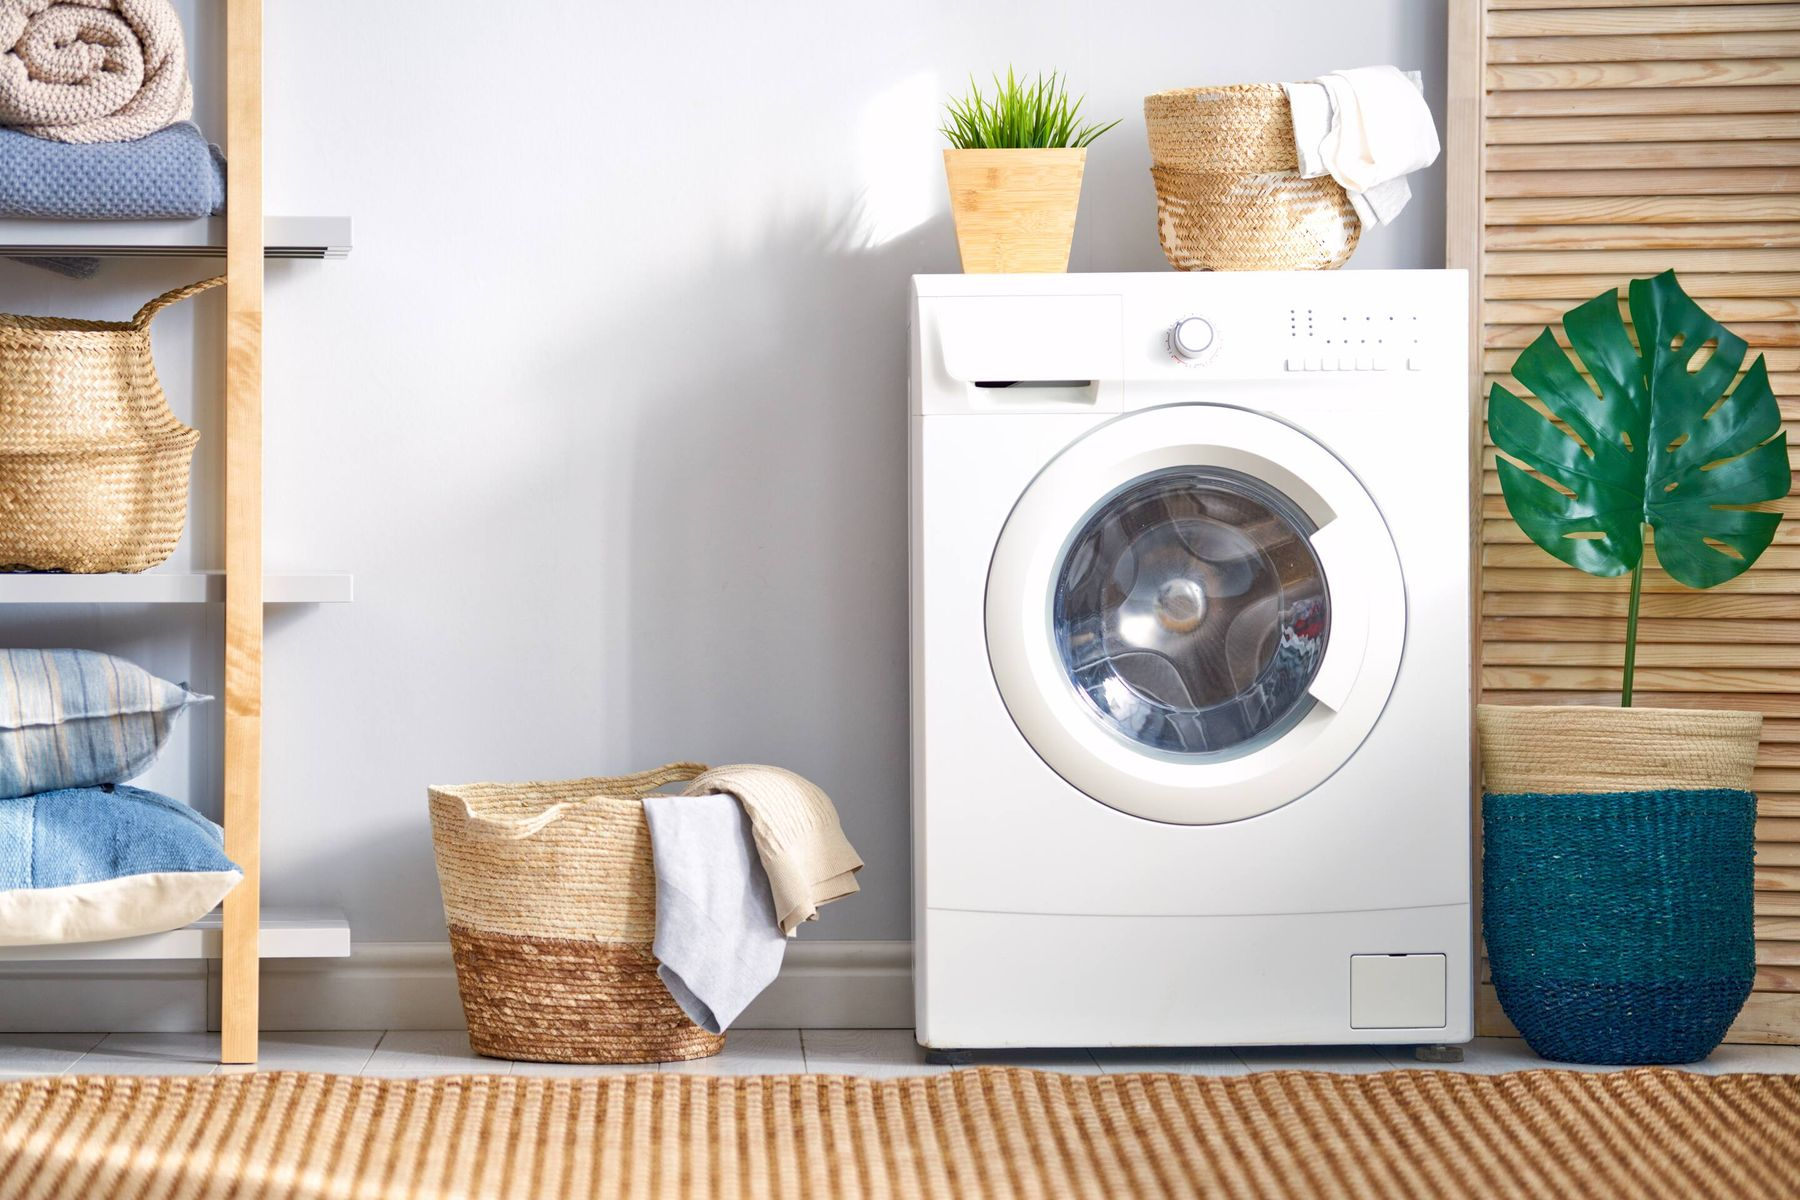 Choose the Right Washing Machine Based on Your Family Size